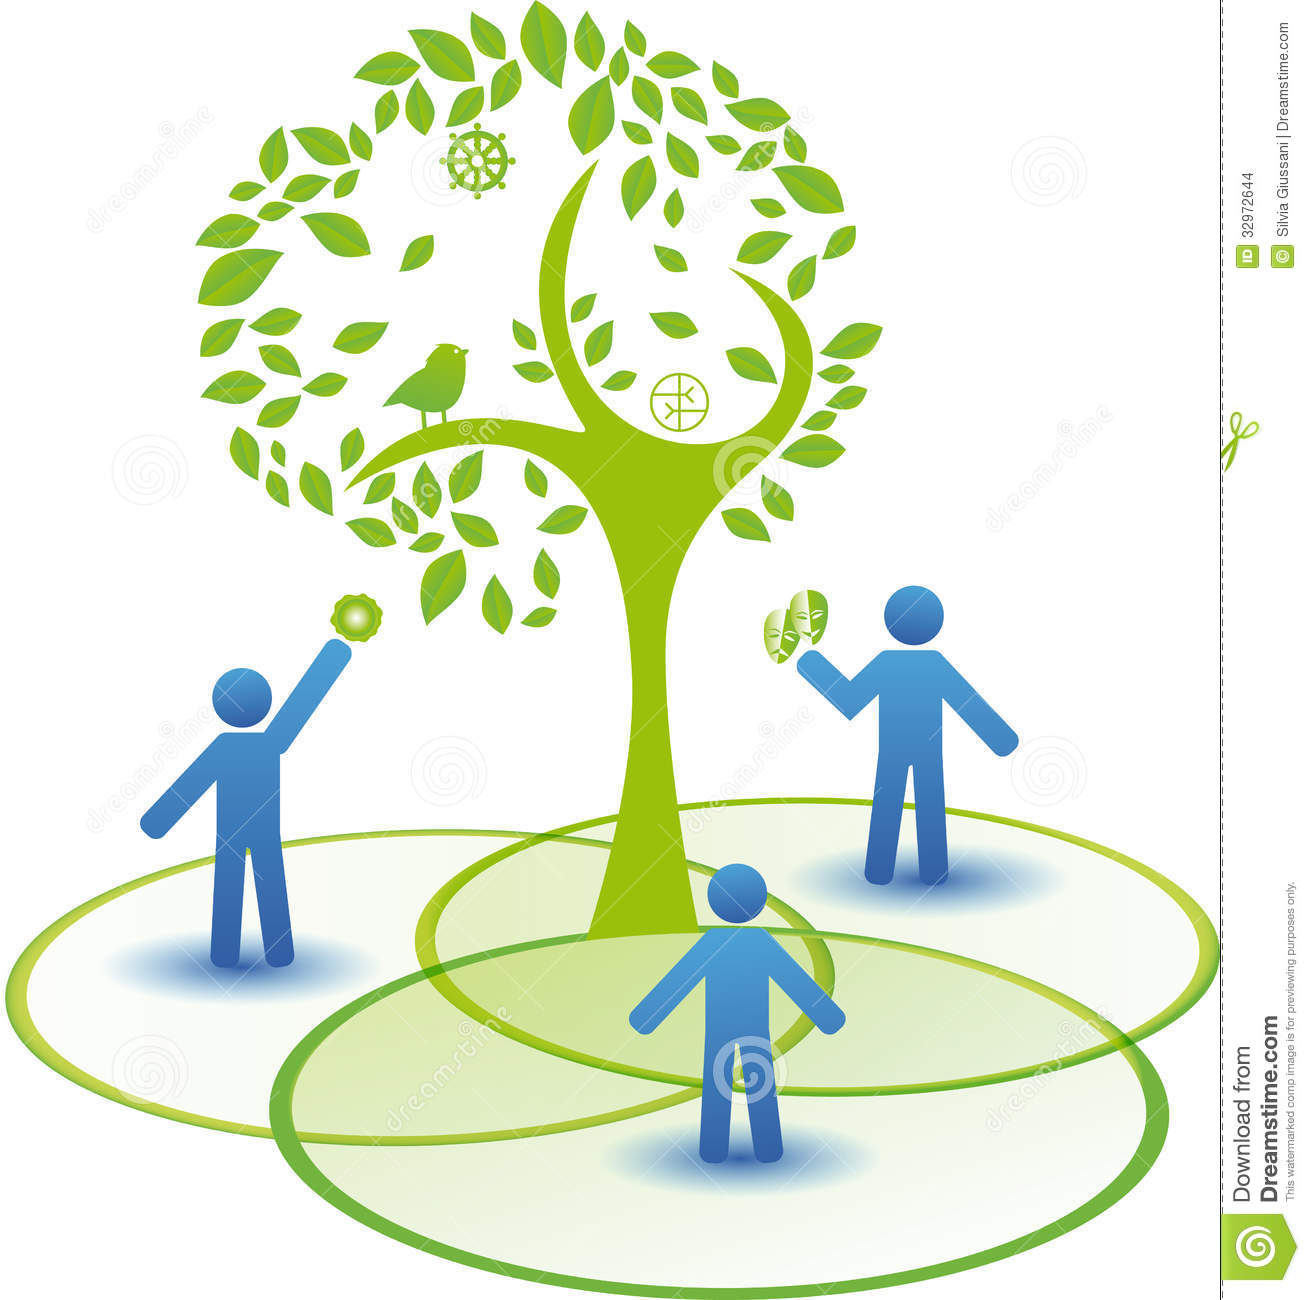 animated tree diagram whitetail deer vital area counseling concept stock images image 32972644